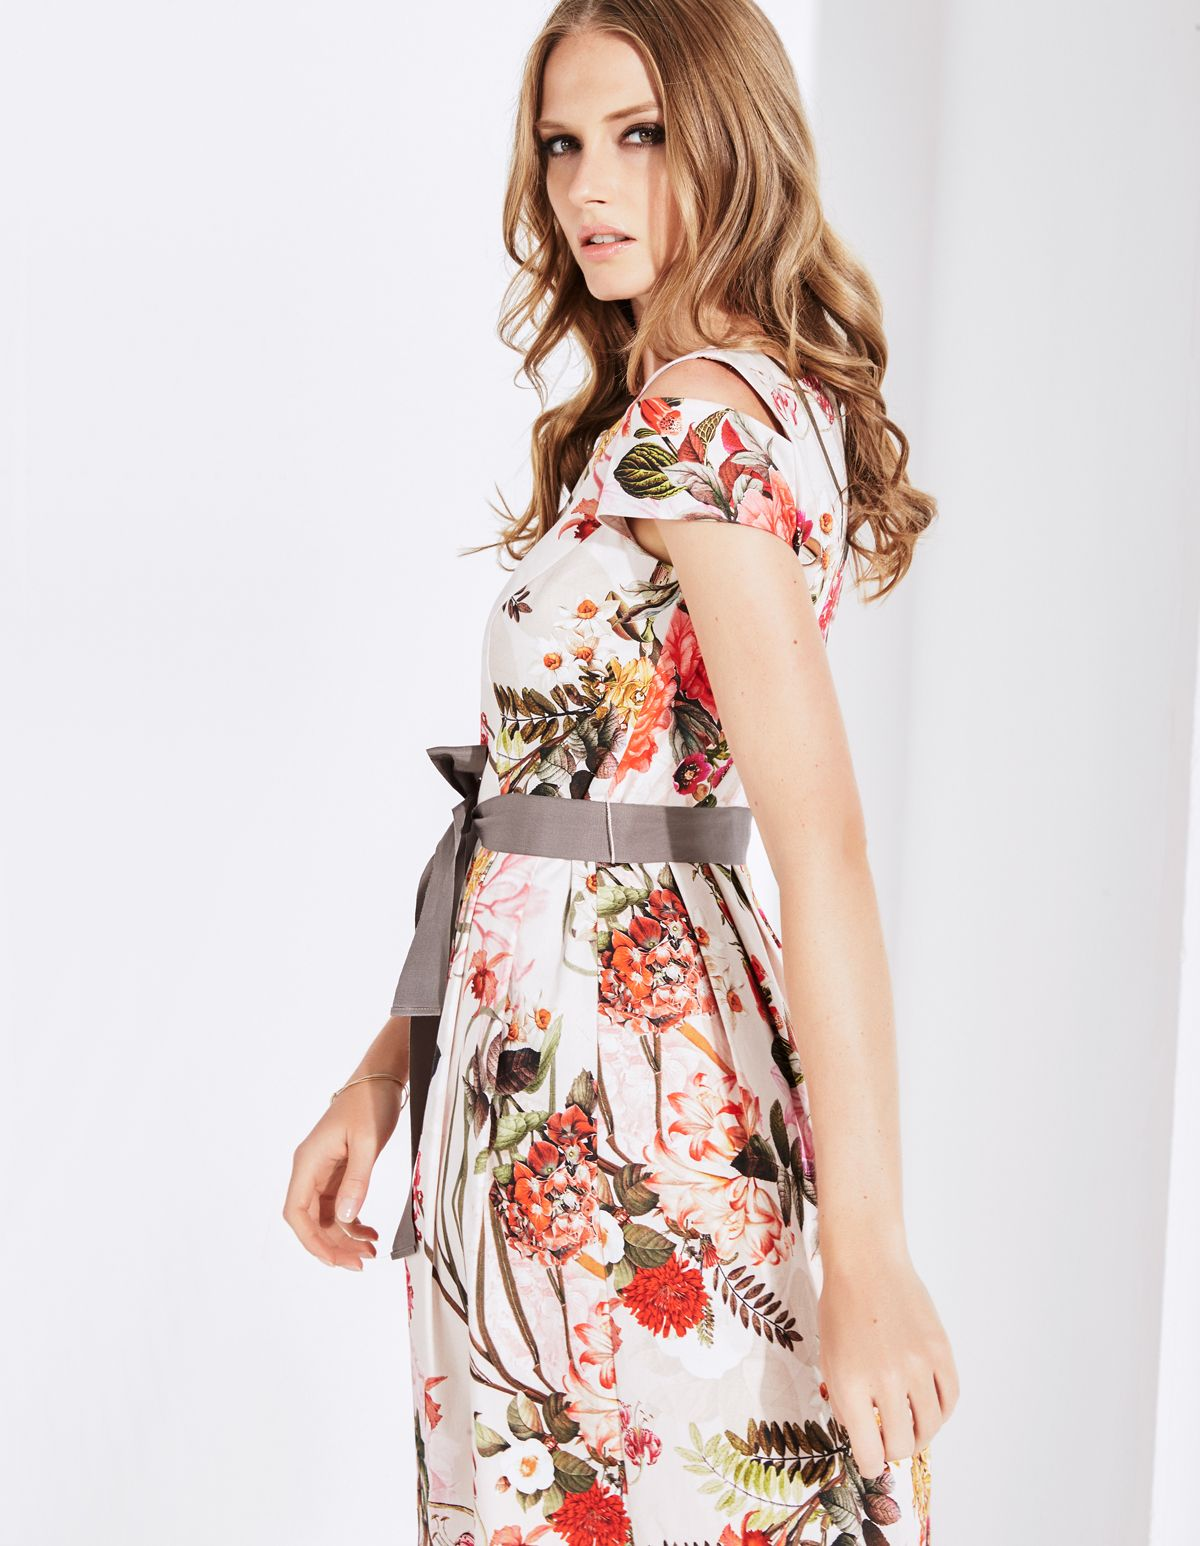 comma fashion  Floral Dress  Wedding Outfit Inspiration  https